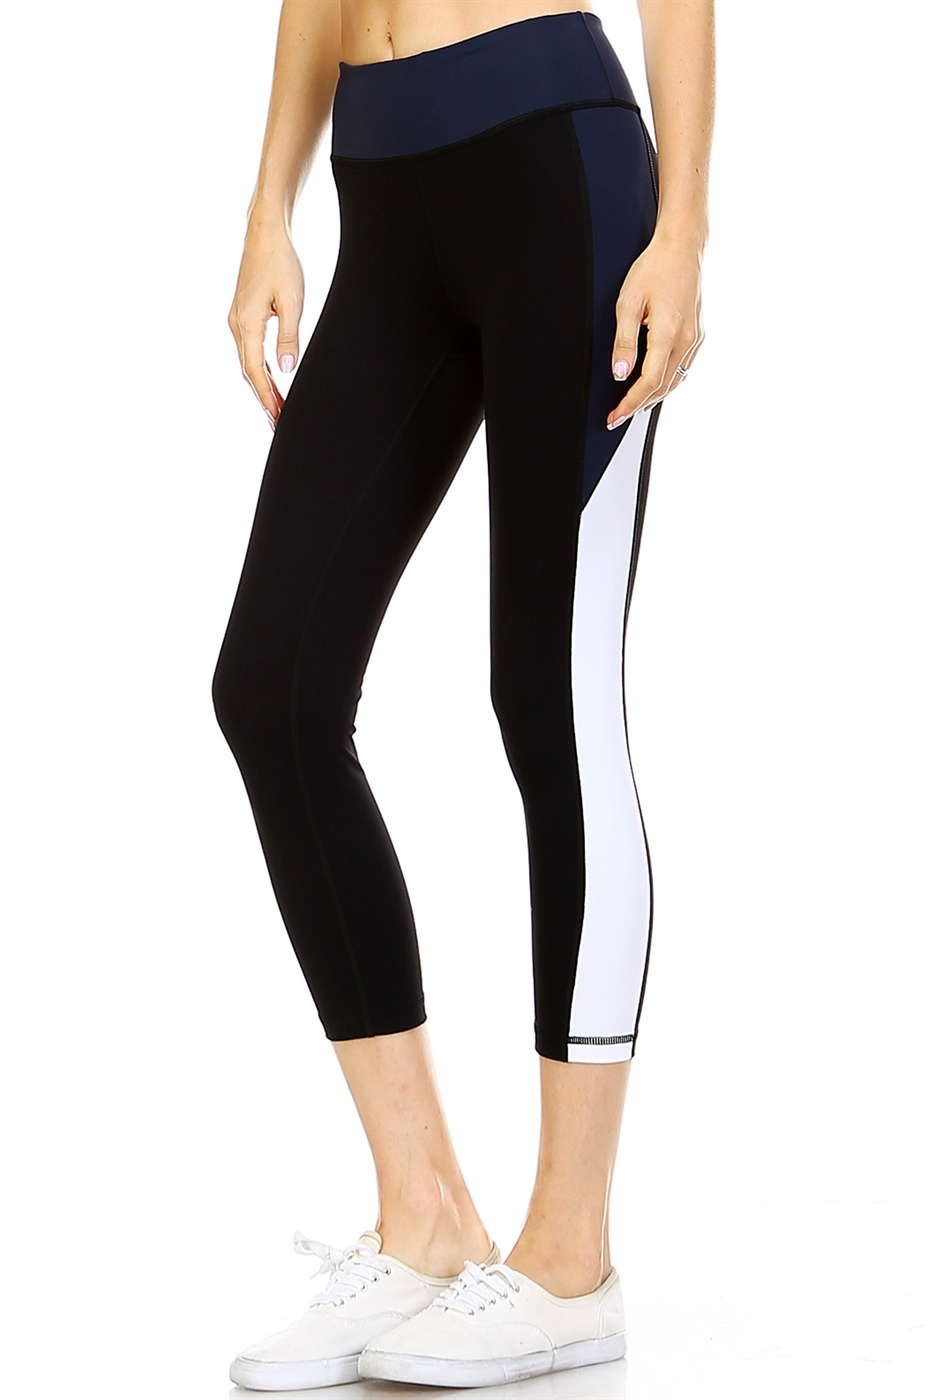 COLORBLOCK LEGGINS - orangeshine.com